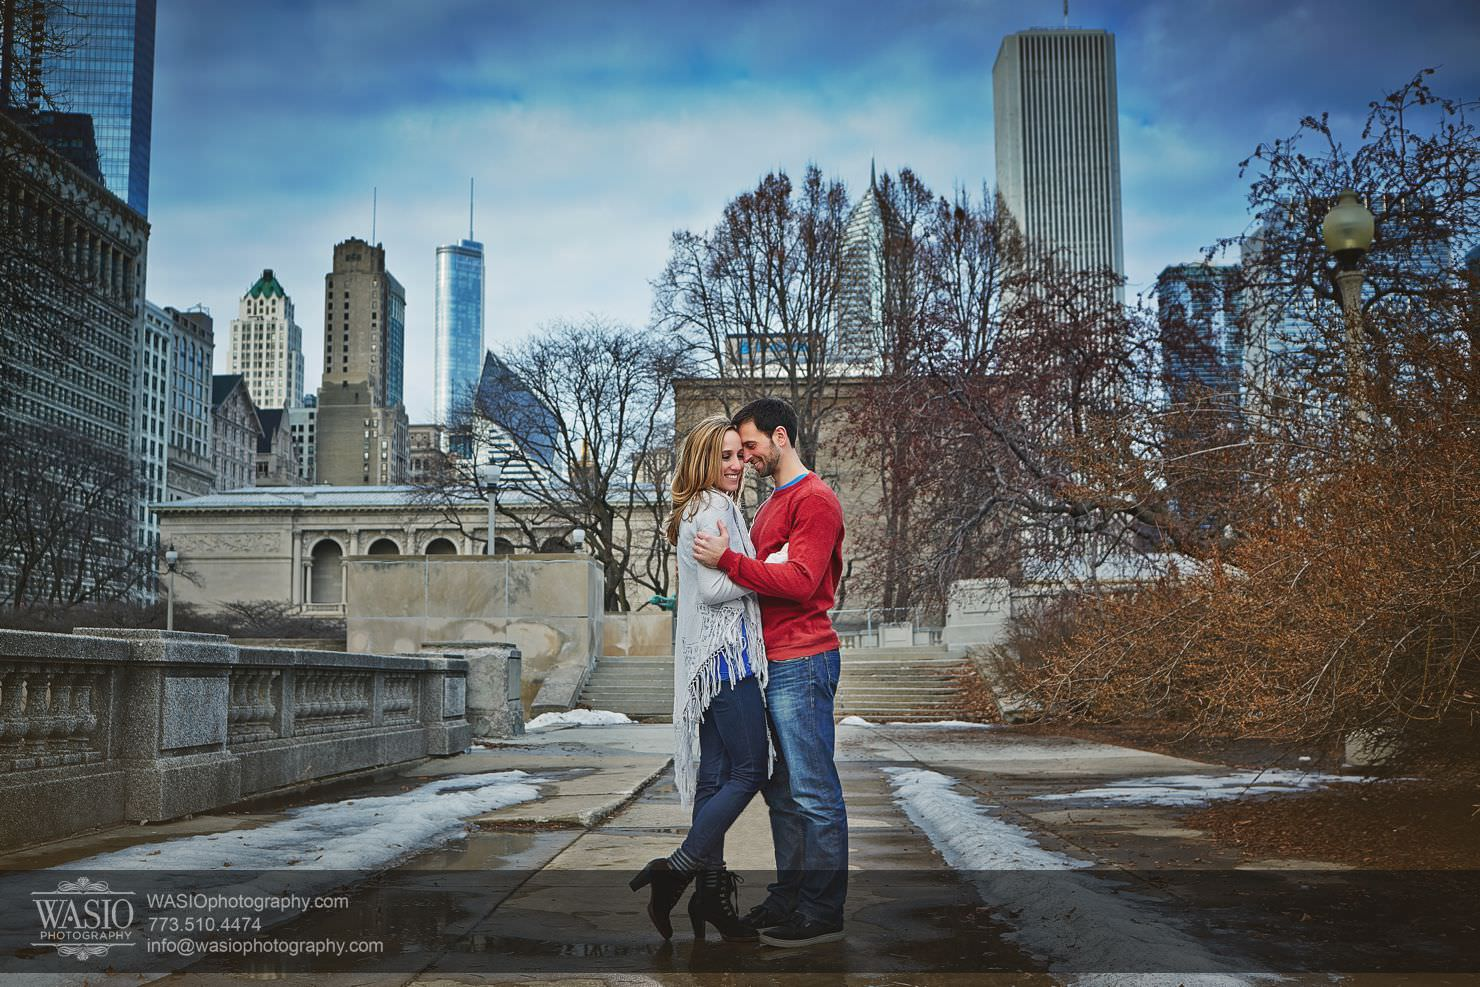 002_Chicago-Winter-Engagement_Courtney-Danny Chicago Winter Engagement - Courtney + Danny